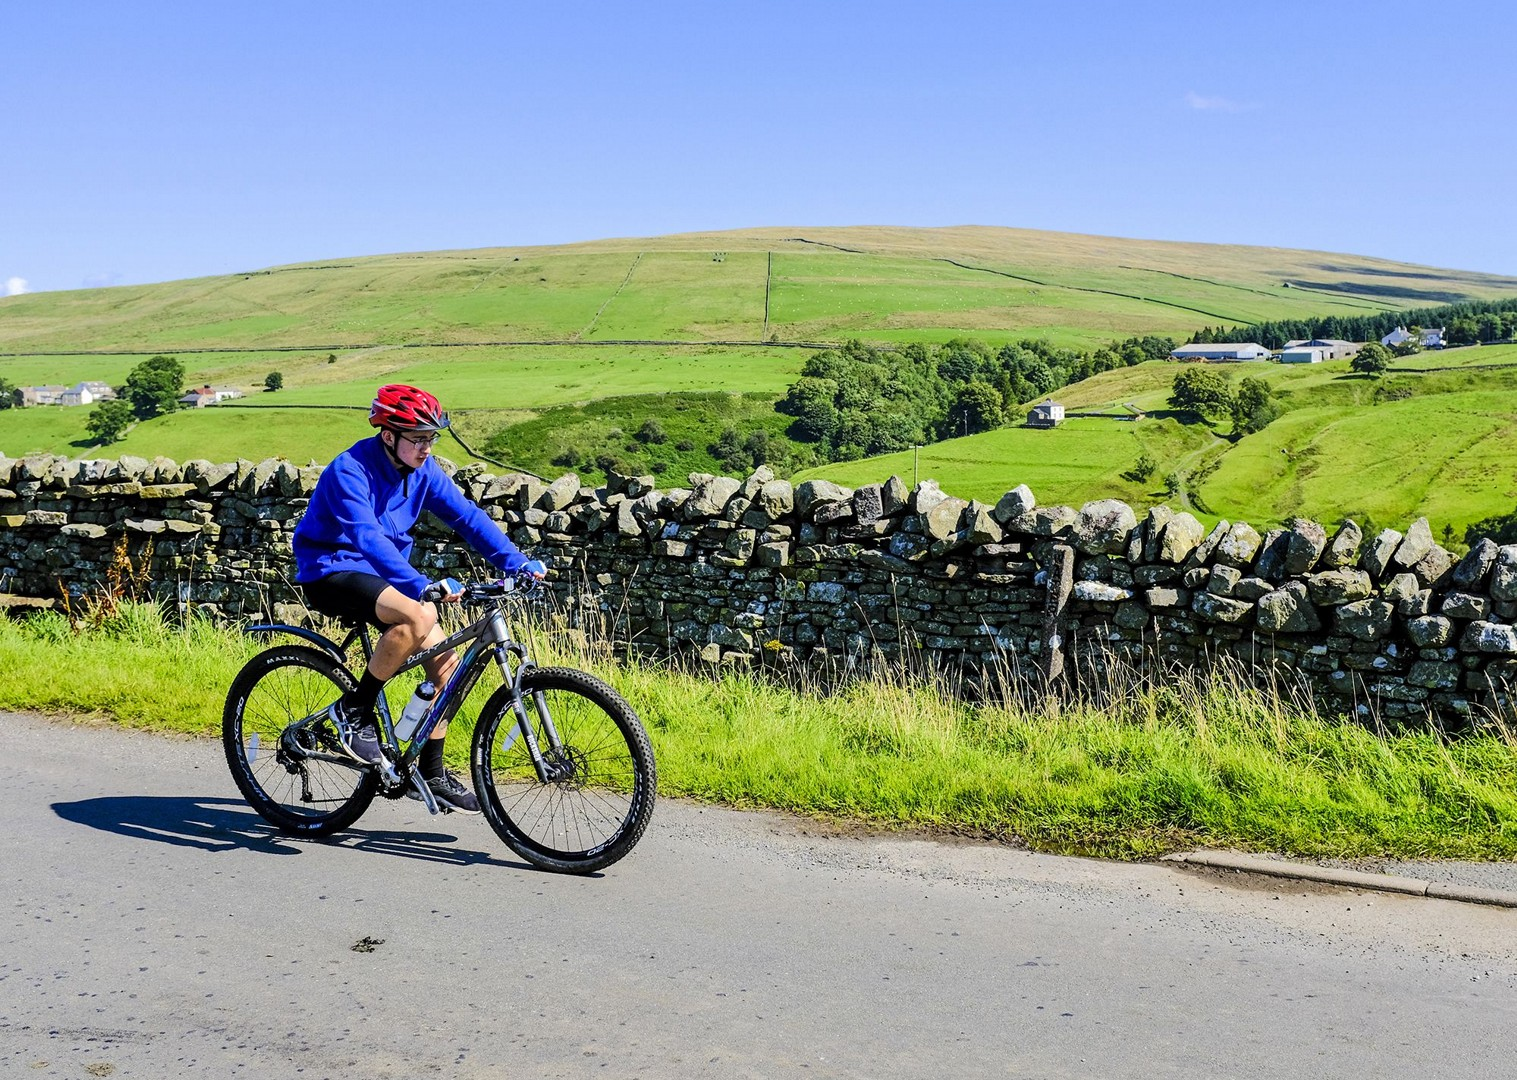 traditional-british-fields-with-friends-and-family-trip-cycling-holiday.jpg - UK - C2C - Coast to Coast 3 Days Cycling - Self-Guided Leisure Cycling Holiday - Leisure Cycling